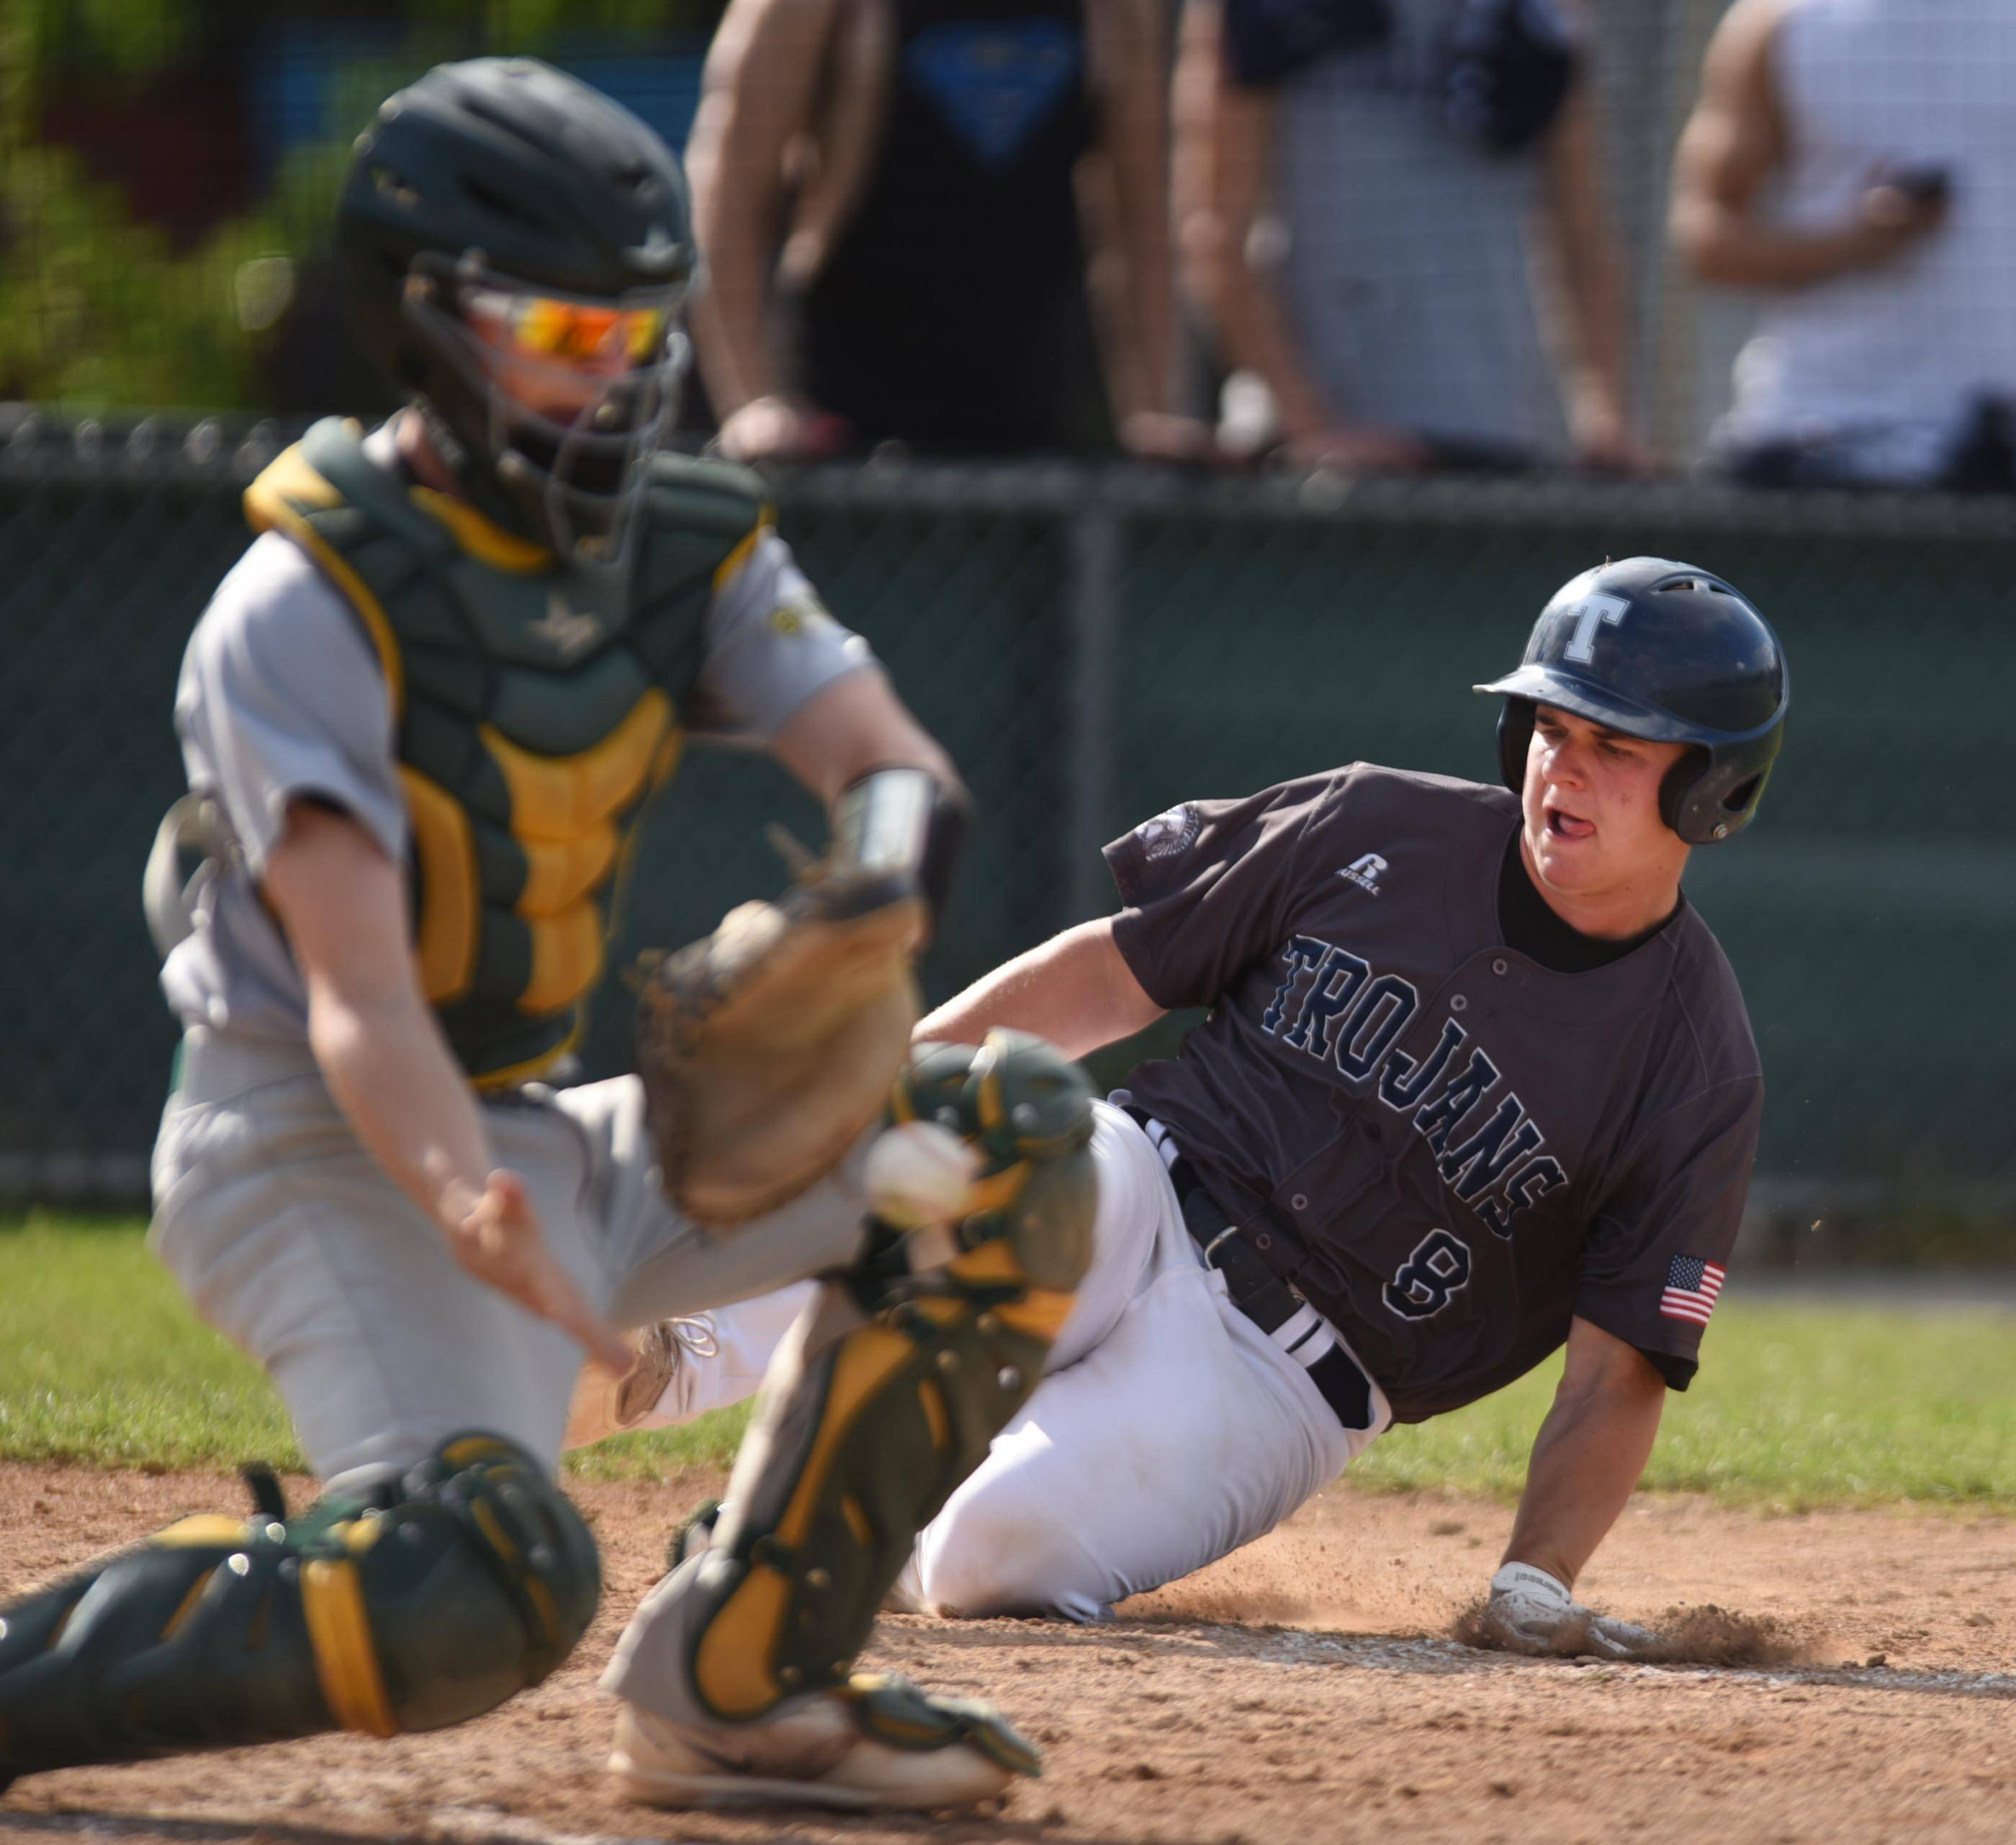 Cary-Grove's Collin Walsh scores on a hit by teammate Tyler Pennington as Crystal Lake South catcher Ryan Parquette fields the throw in the first inning Thursday in Cary.